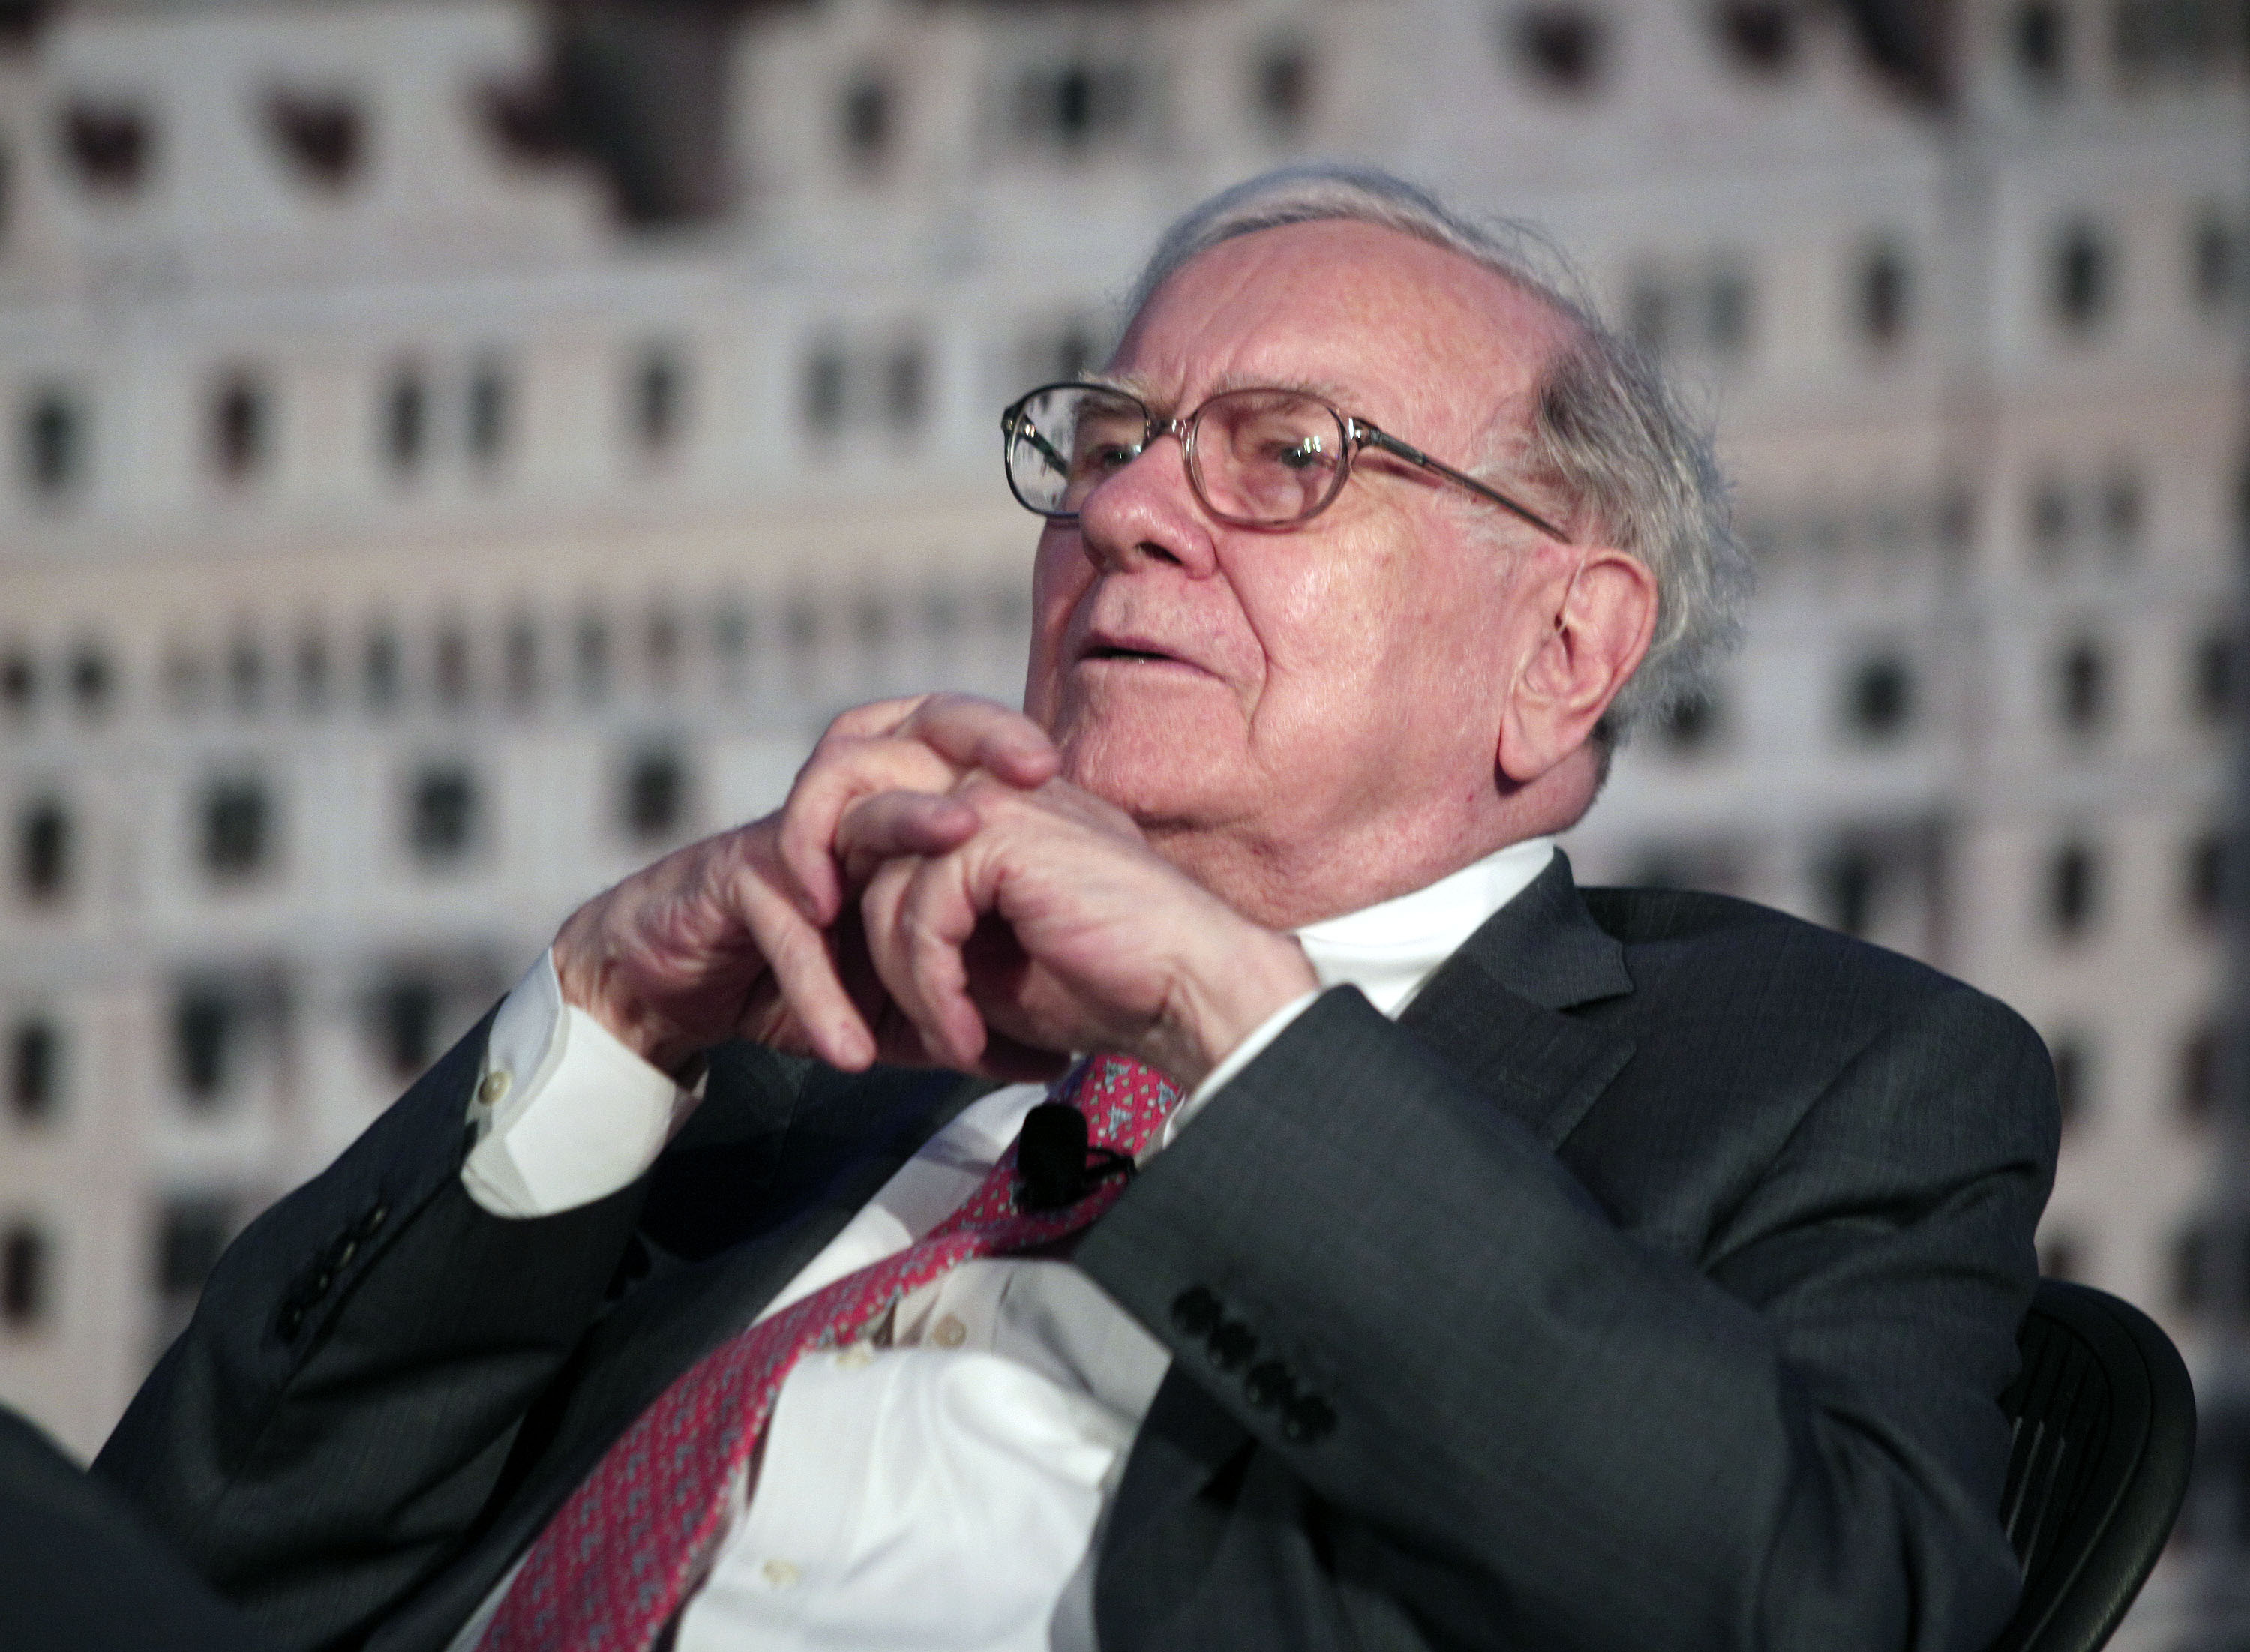 <strong>Berkshire Hathaway</strong> Berkshire Hathaway's per-share book value climbed 18.2% in 2013, but it underperformed the Standard &amp; Poor's 500 index, which grew by more than 32% with dividends. The company traditionally outperforms the S&amp;P when the index falls or moderately rises, but falls short in years when the market is strong. Berkshire kicked off 2013 with a big-name acquisition, joining 3G Capital to pay $23 billion to acquire H.J. Heinz. The earnings boost from that deal, which closed in June, is expected to be substantial in 2014, according to Chief Executive Warren Buffett.